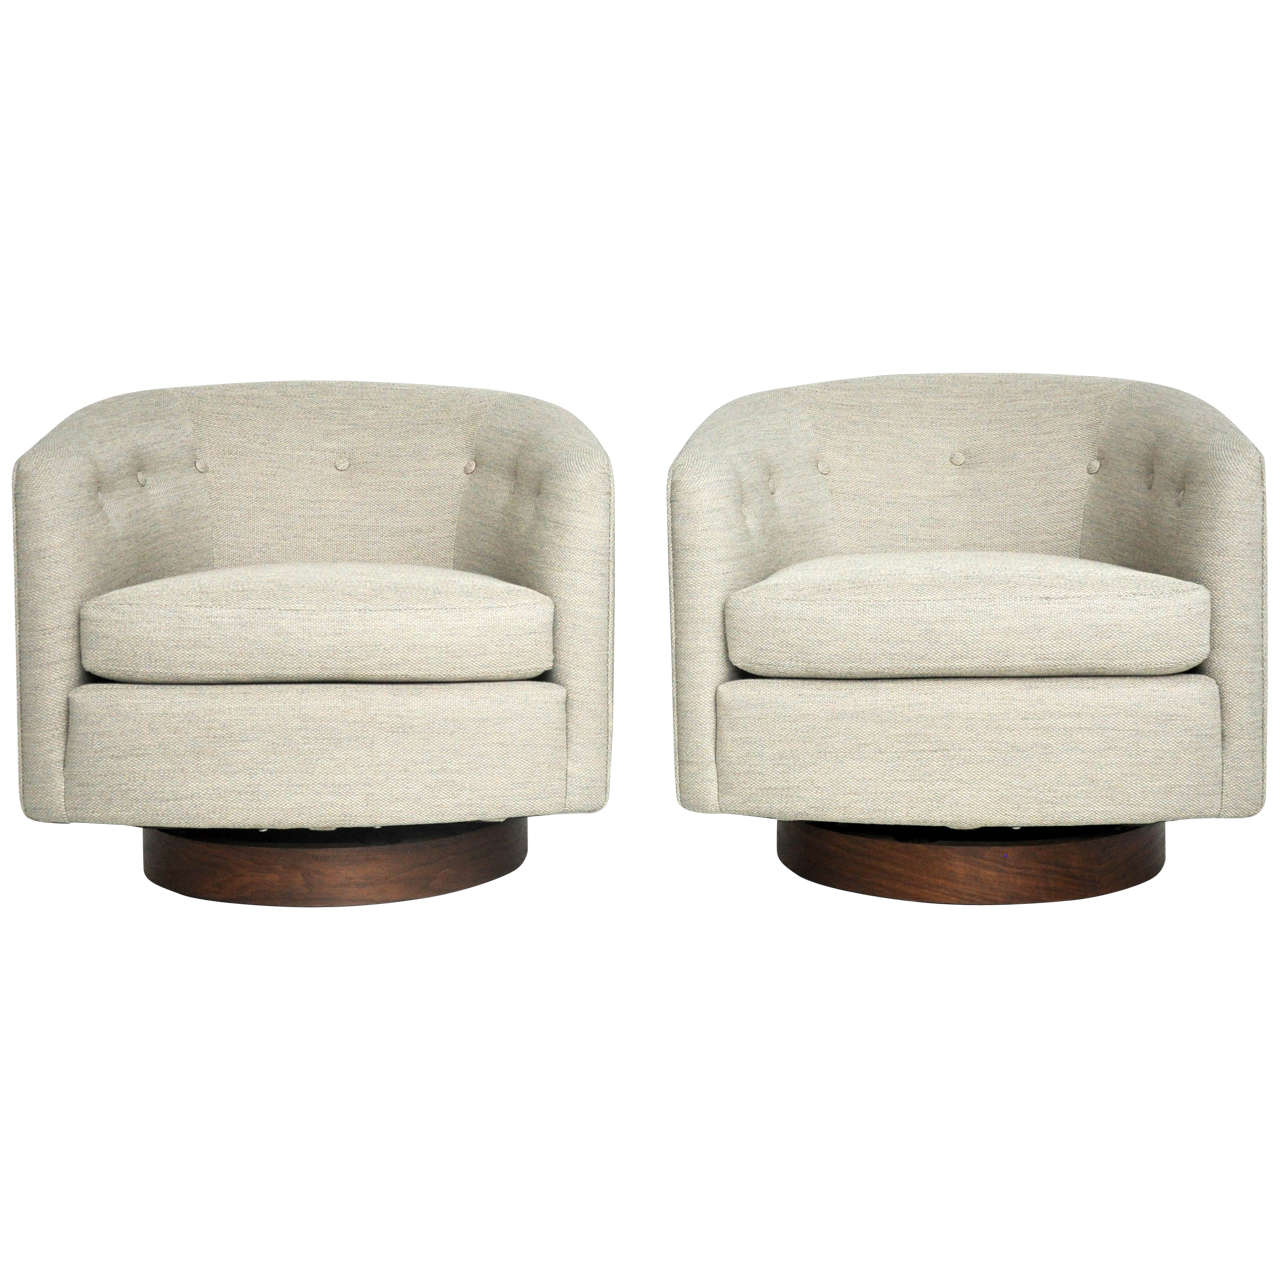 Milo Baughman Swivel Lounge Chairs At 1stdibs